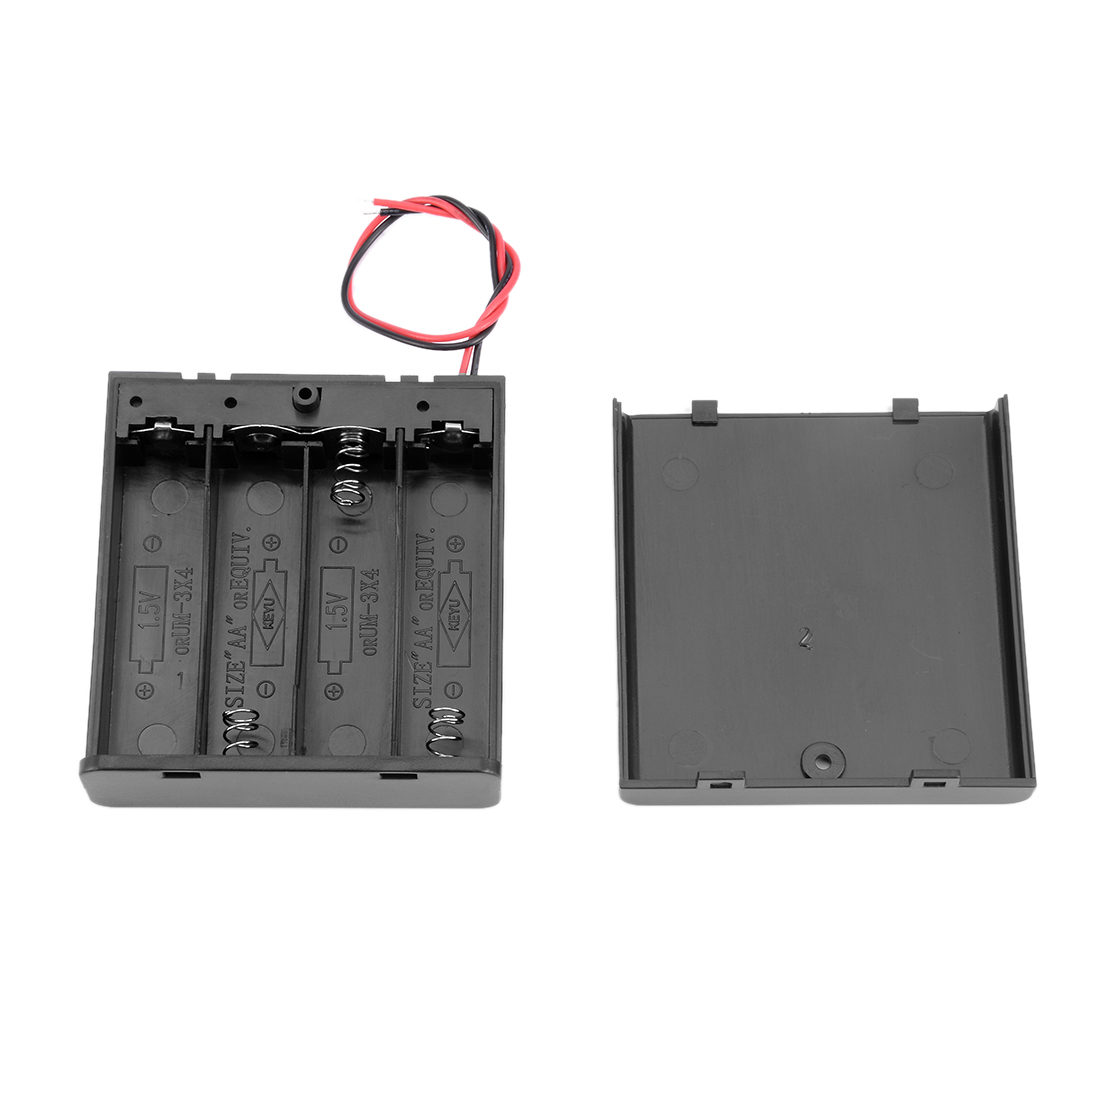 Unique Bargains 10 Pcs 6V Battery Case Storage Box 4 x 1.5V AA Batteries ON/OFF Switch w Cover - image 2 of 5